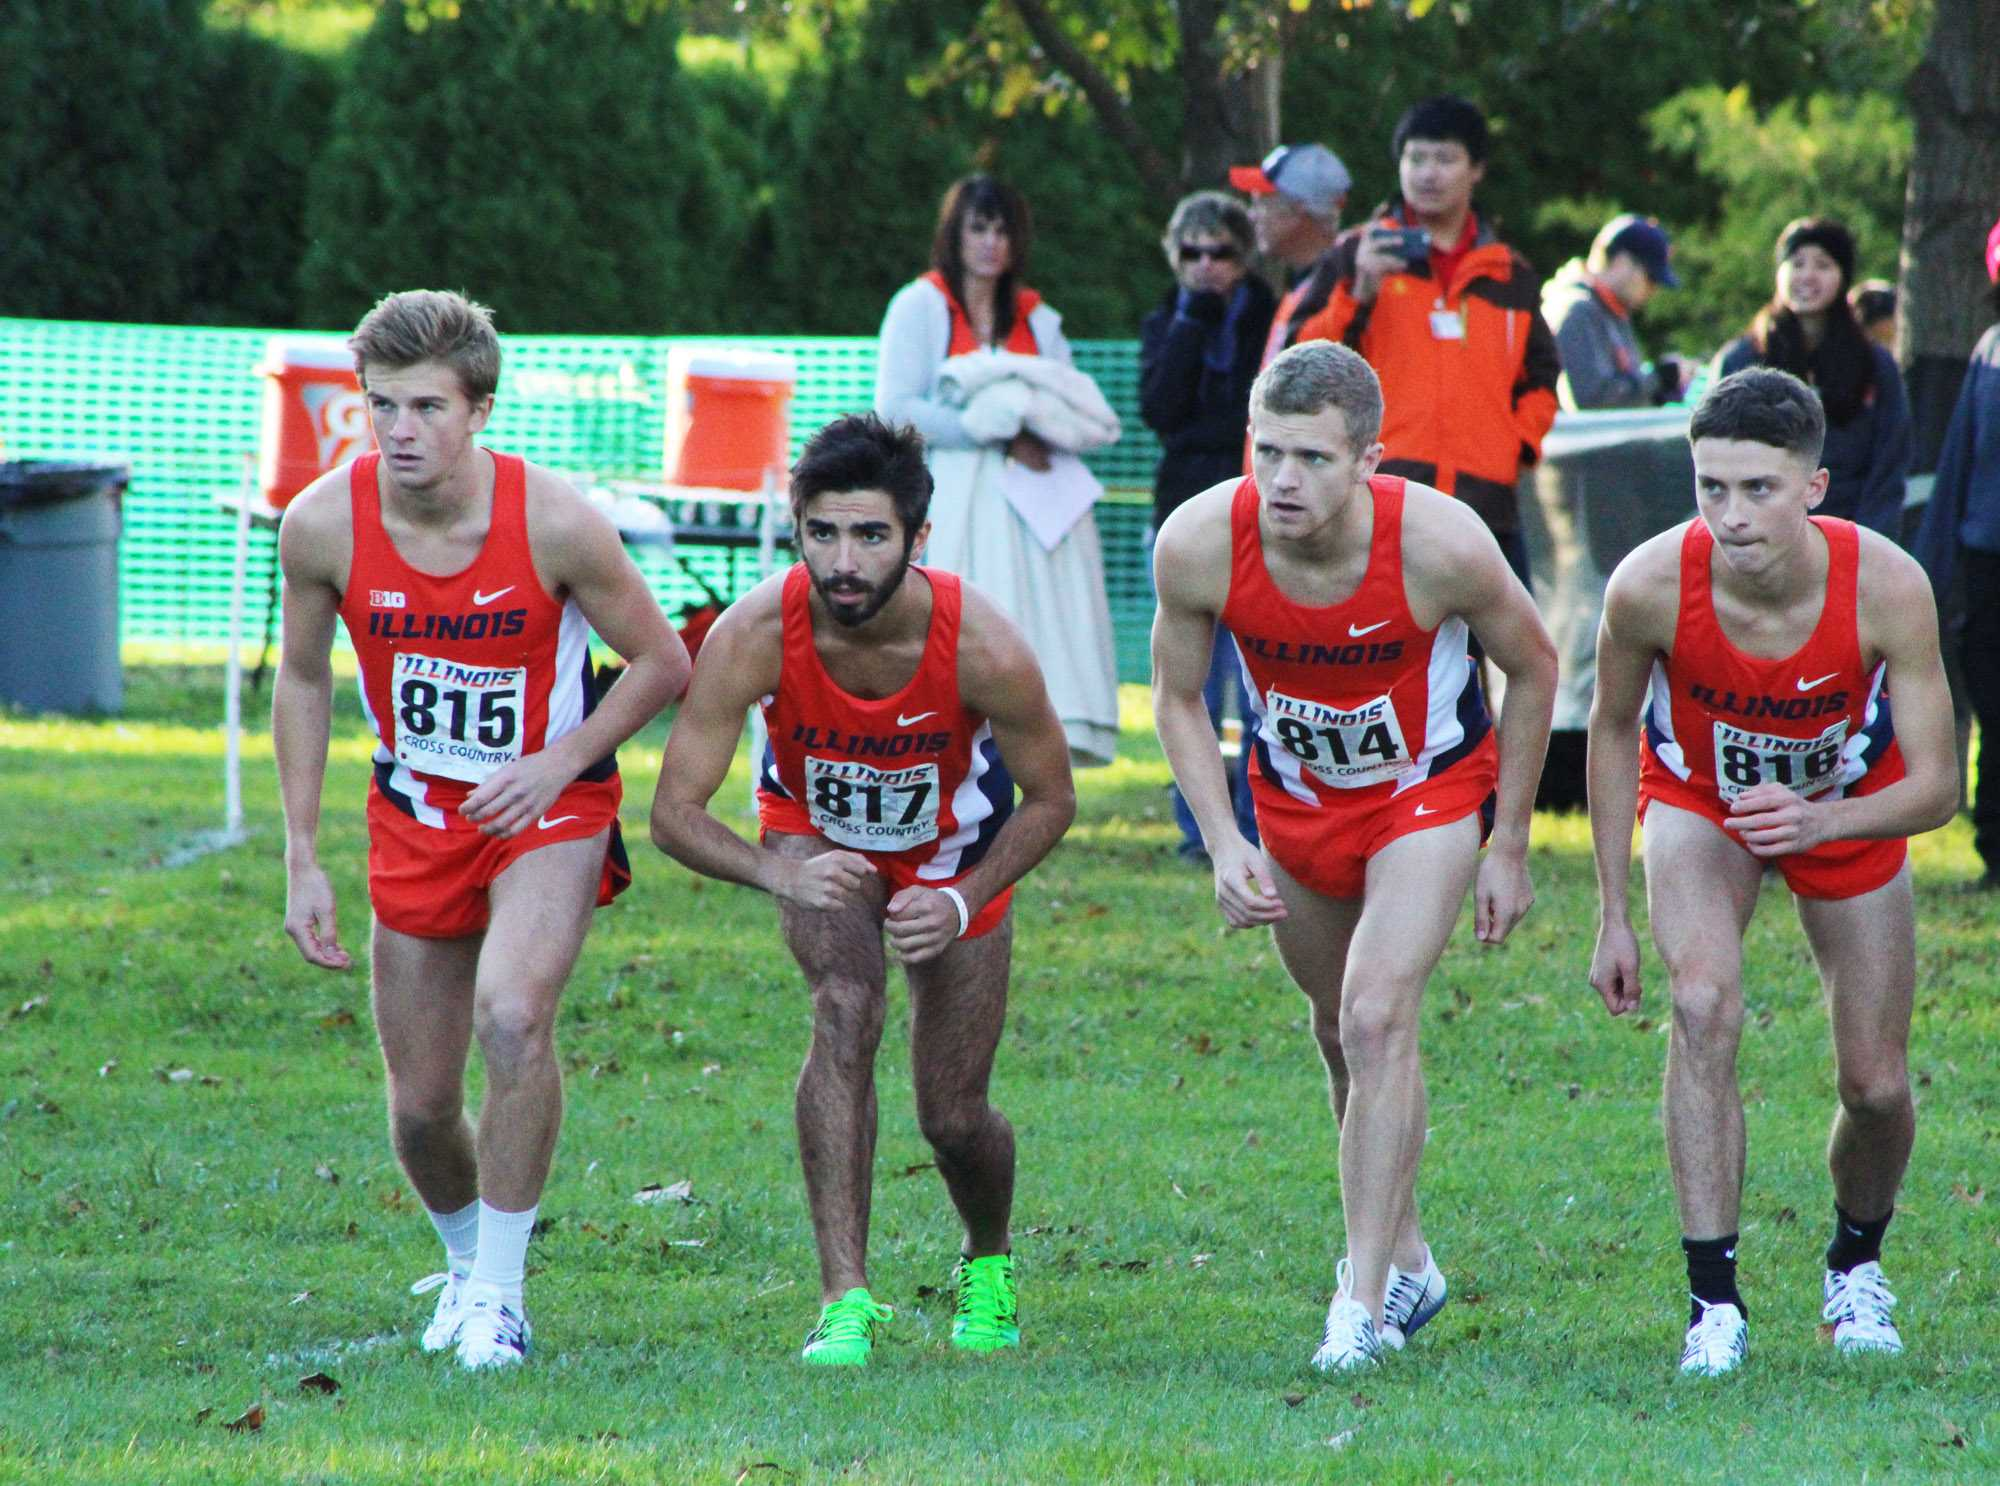 Lining up before the race begins, runners Joe Crowlin, Garrett Lee, Luke Brahm, and Caleb Hummer wait for the gunshot at the Illini Open on Oct. 21.